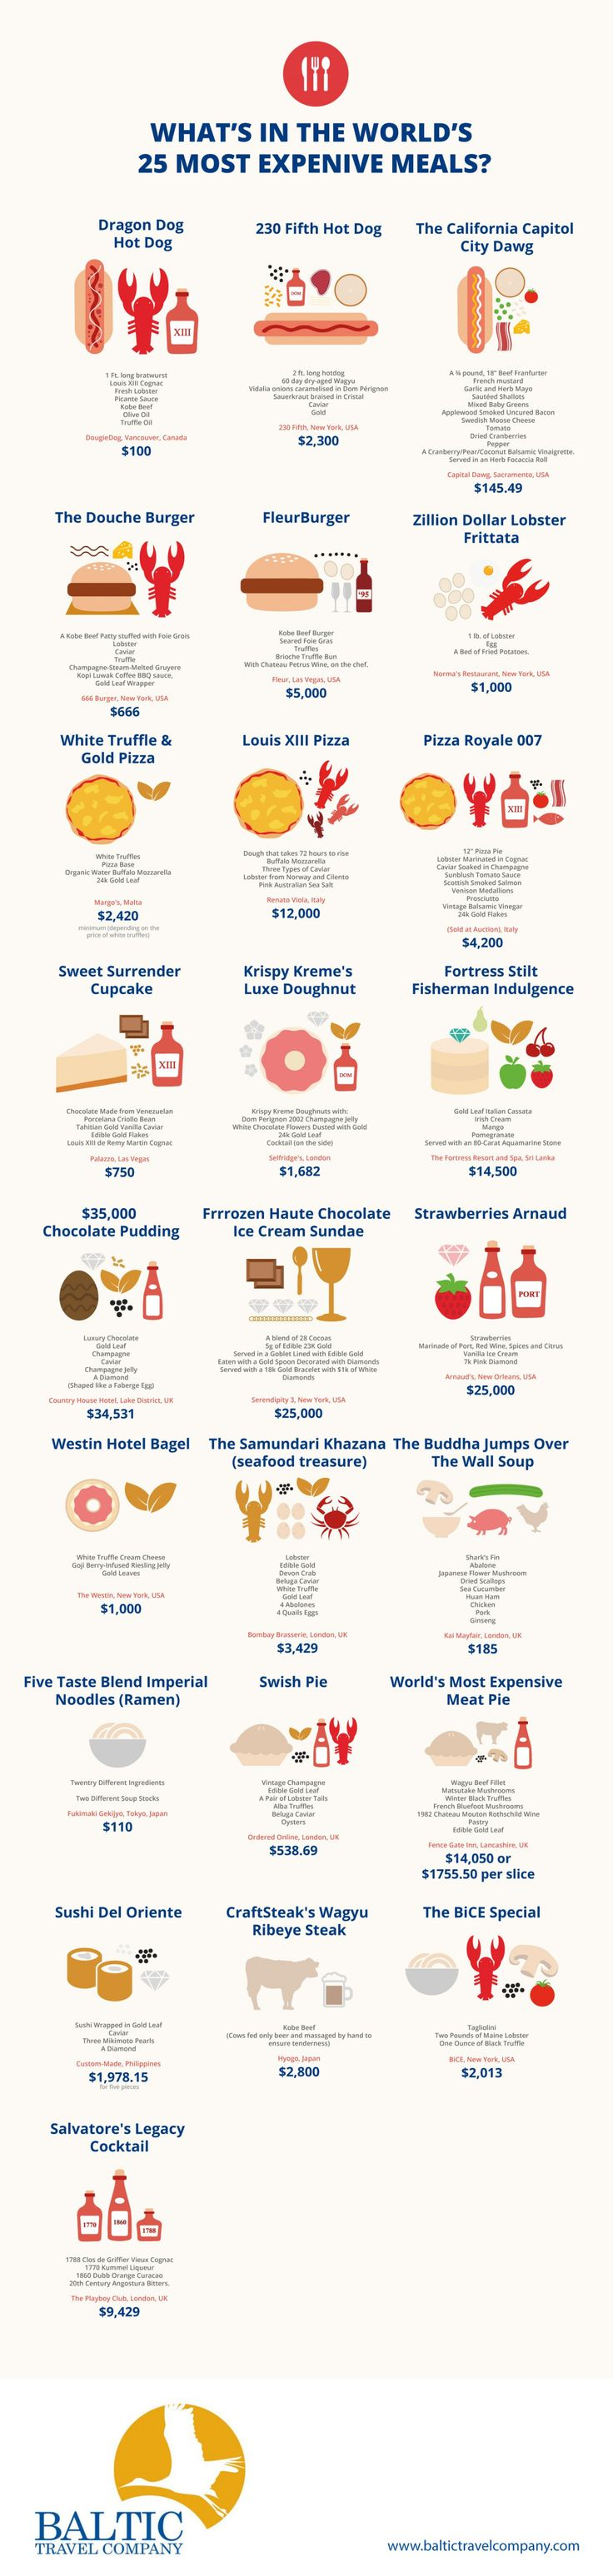 world's most expensive meals